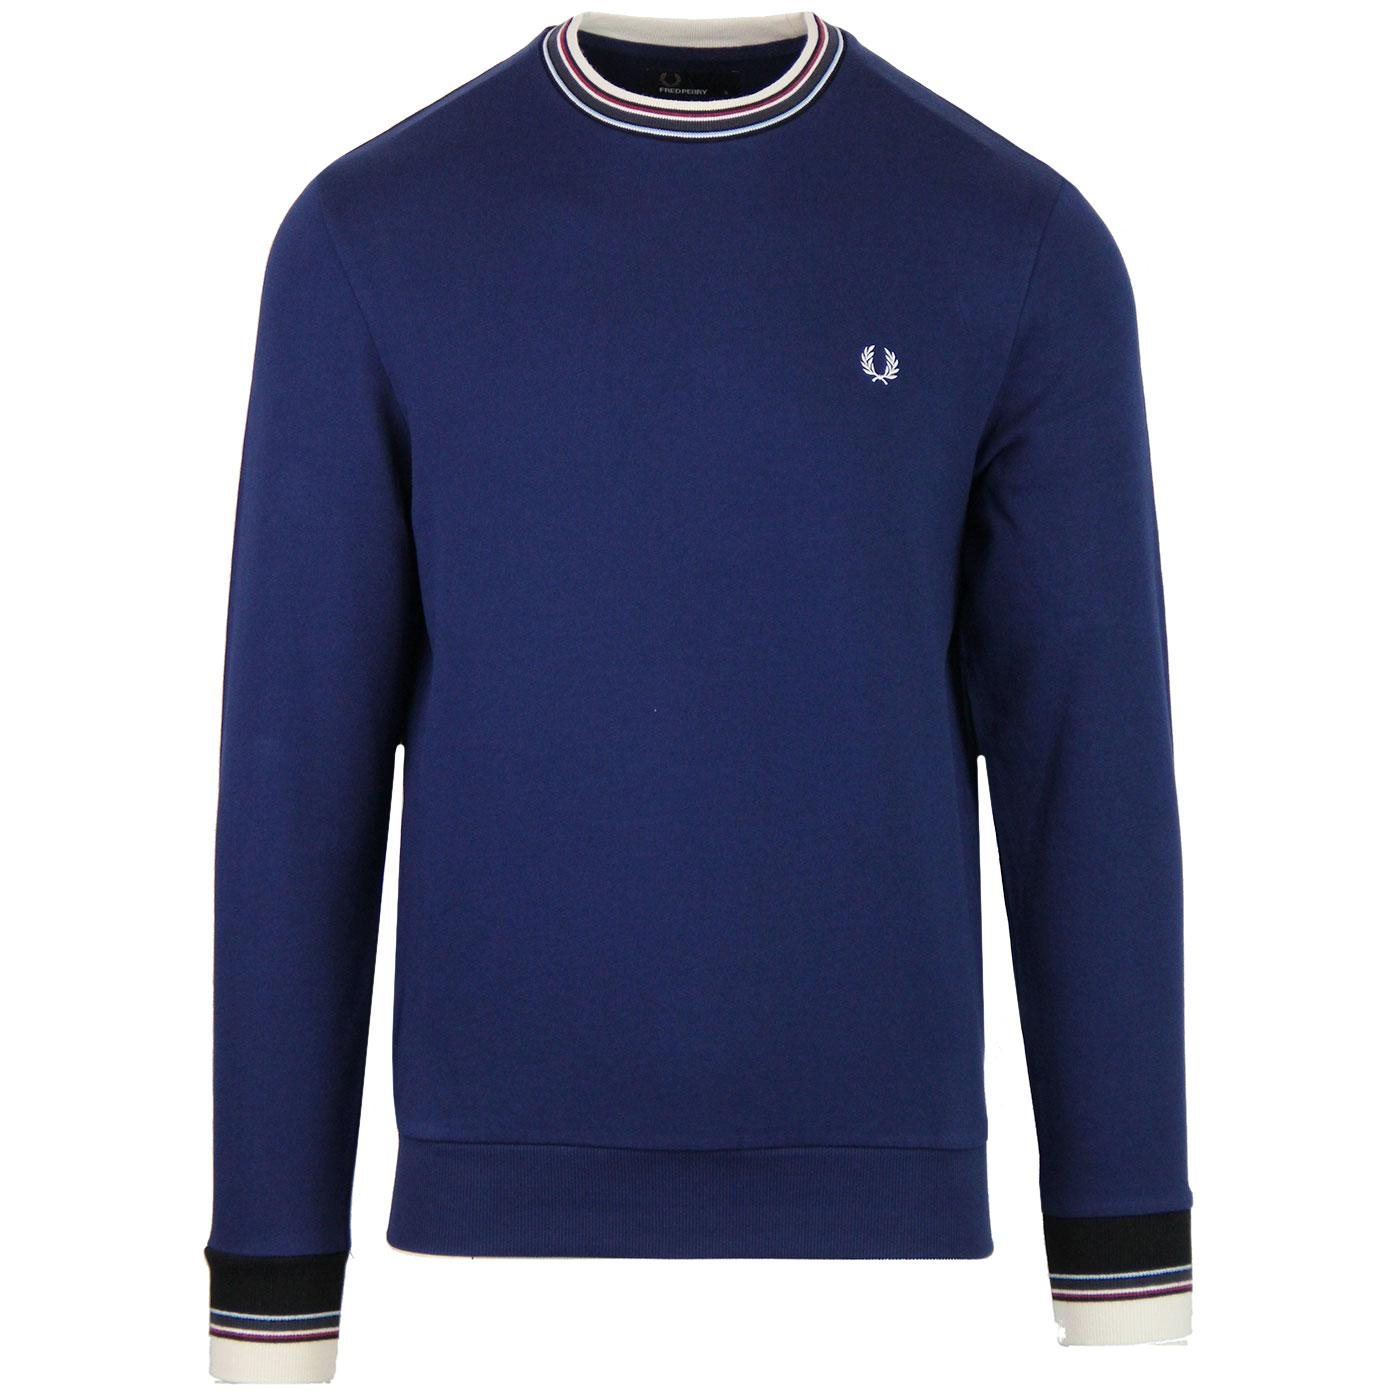 FRED PERRY Retro Mod Bold Tipped Crew Sweatshirt